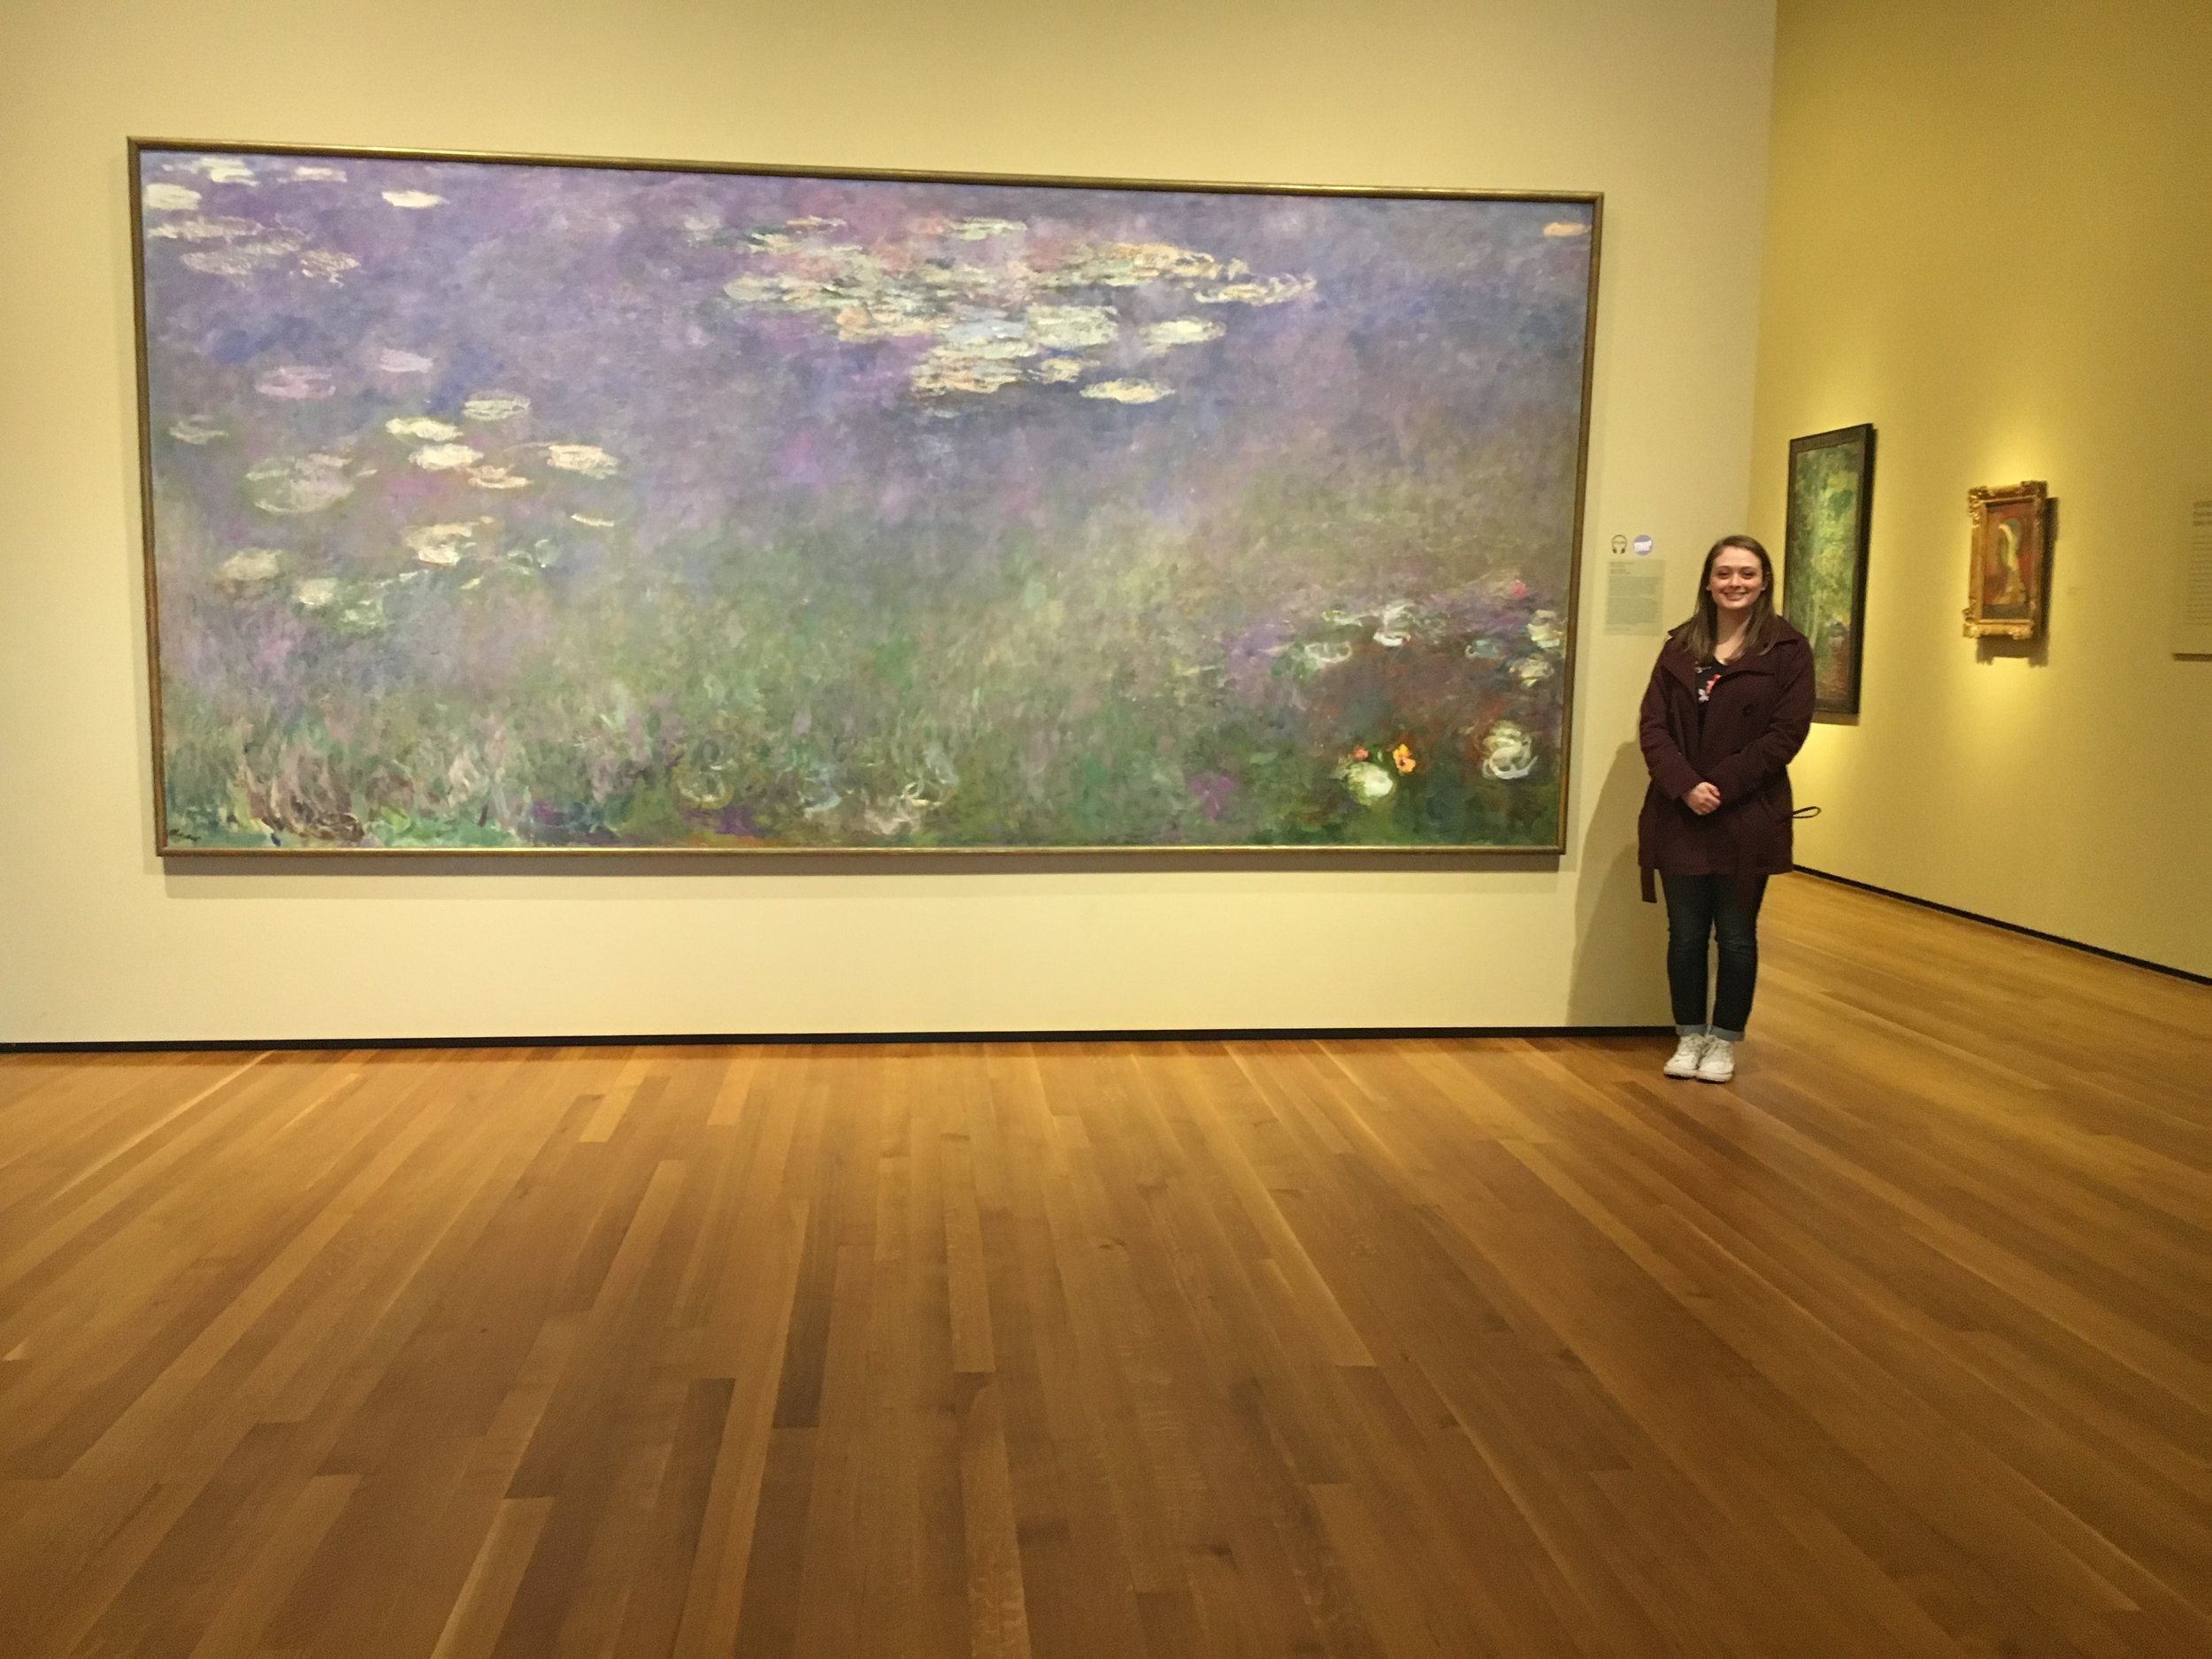 Sydney posing in front of artist Claude Monet's  Water Lillies  painting during her trip to Cleveland, Ohio for the 2019 Alpha Chi National Conference.